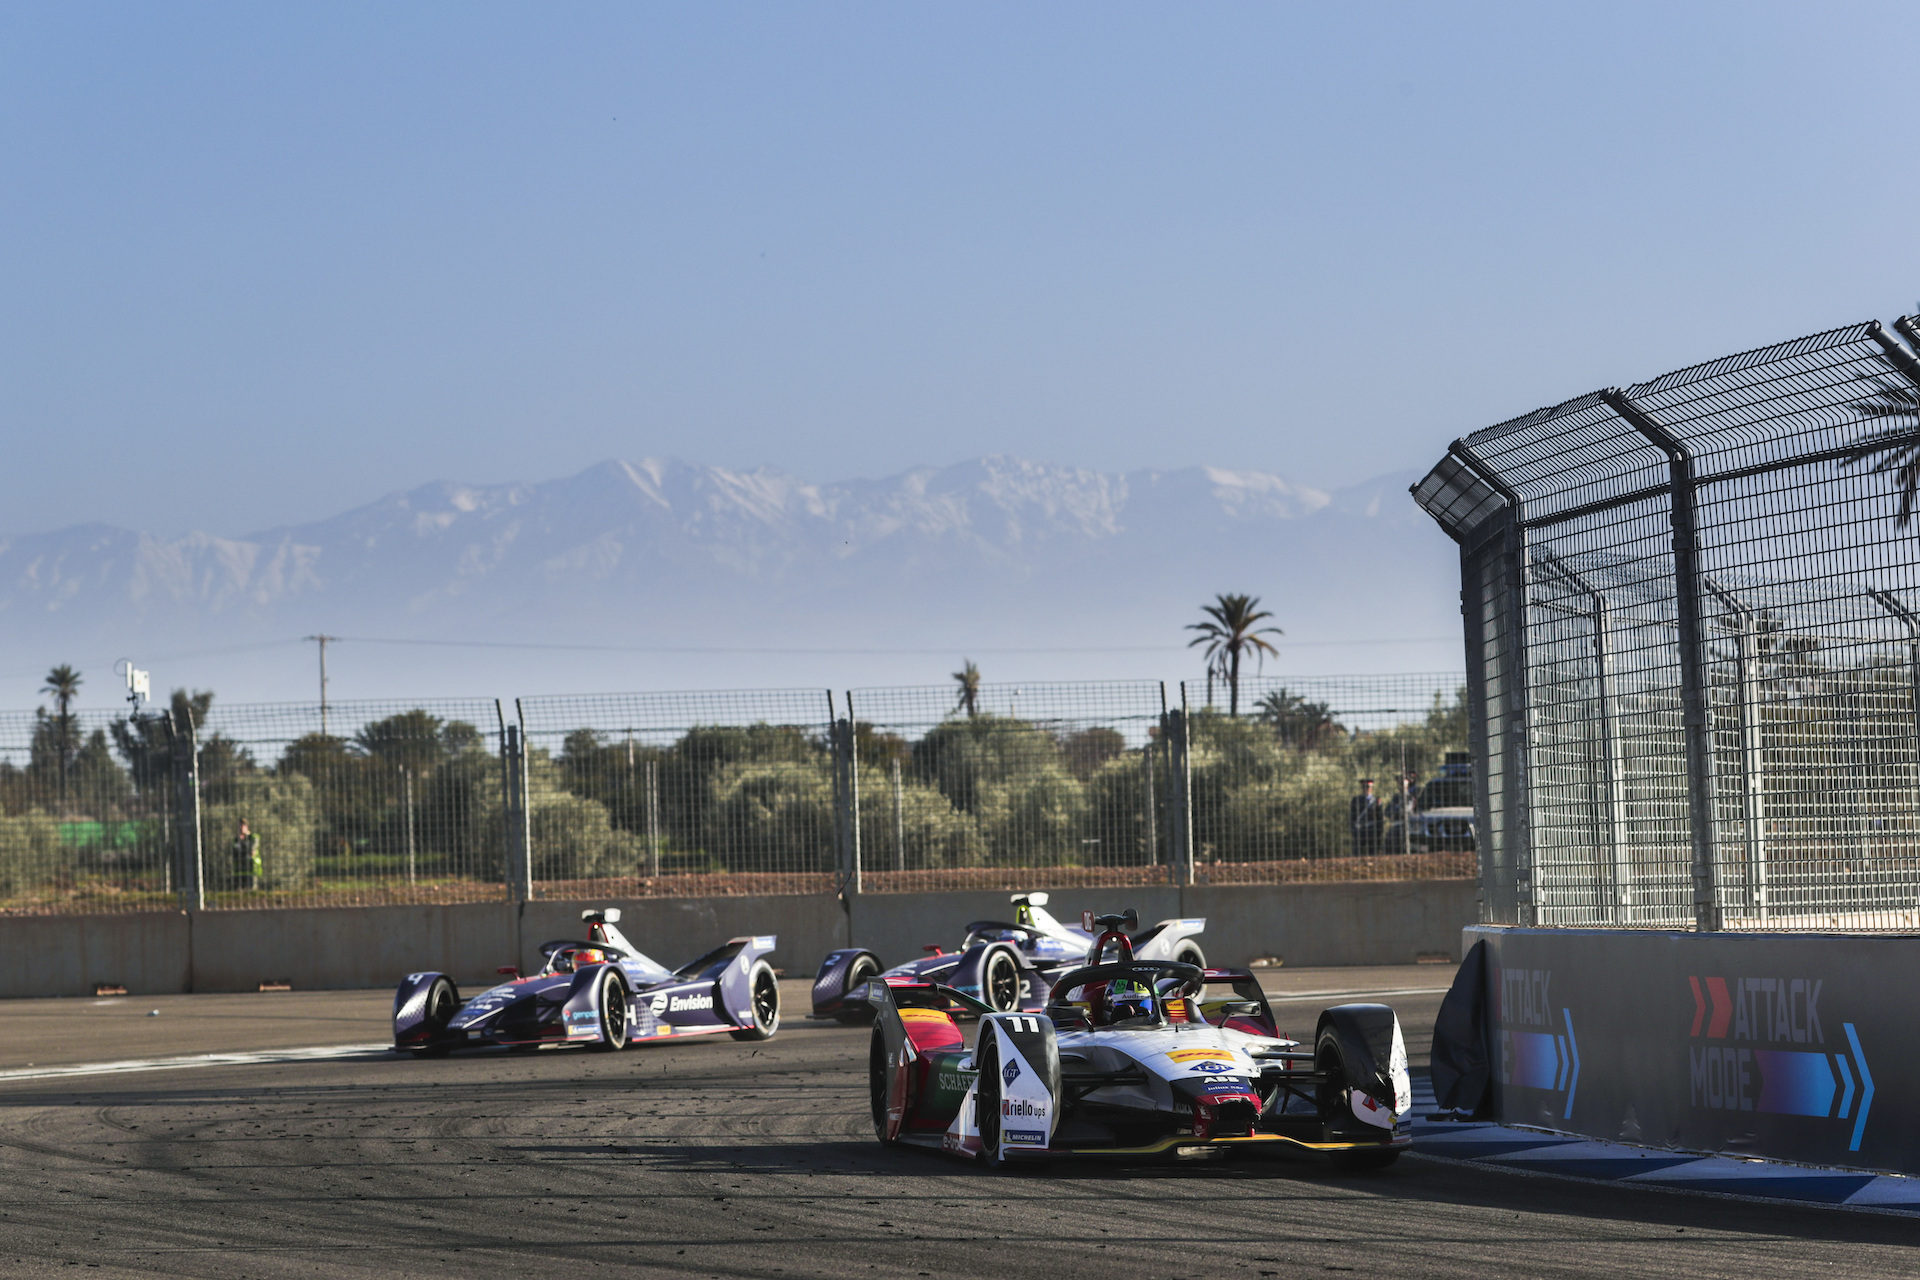 Formel E Autos in Marrakesch